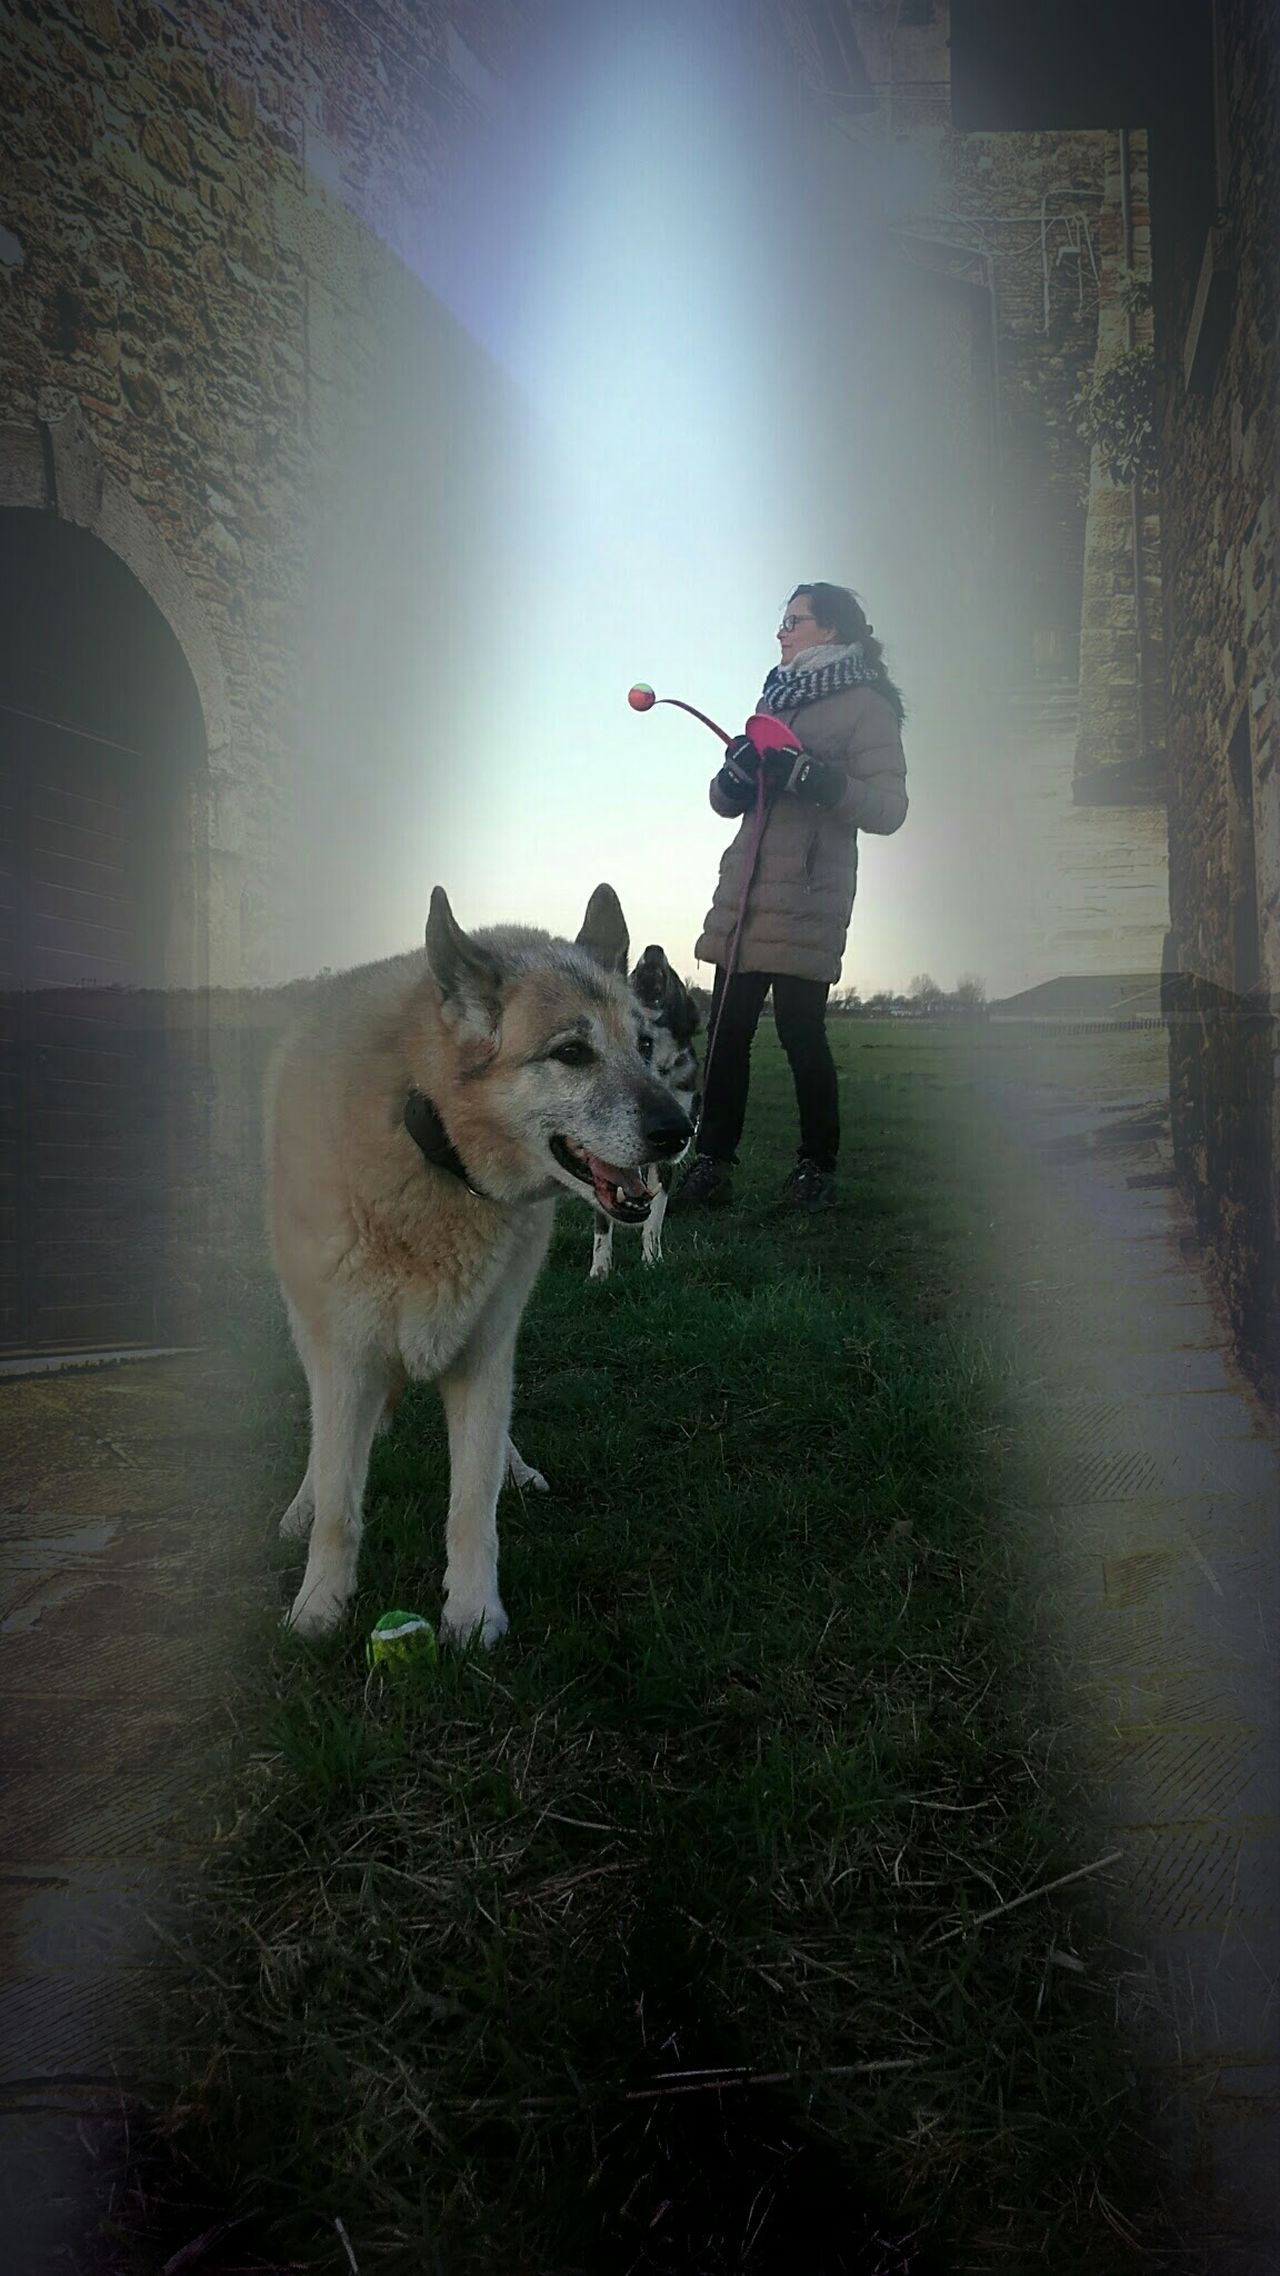 Dog Pets Digital Composite Friendship Loyalty Dutch Countyside Clouds And Sky Landscape_photography Winter 2017 Taking Photos Hello World Art Nederlands Enjoying Life EyeEm Best Edits Nederland EyeEm The Best Shots OpenEdit Landscape Silhouette Photography Photooftheday Check This Out Me Women